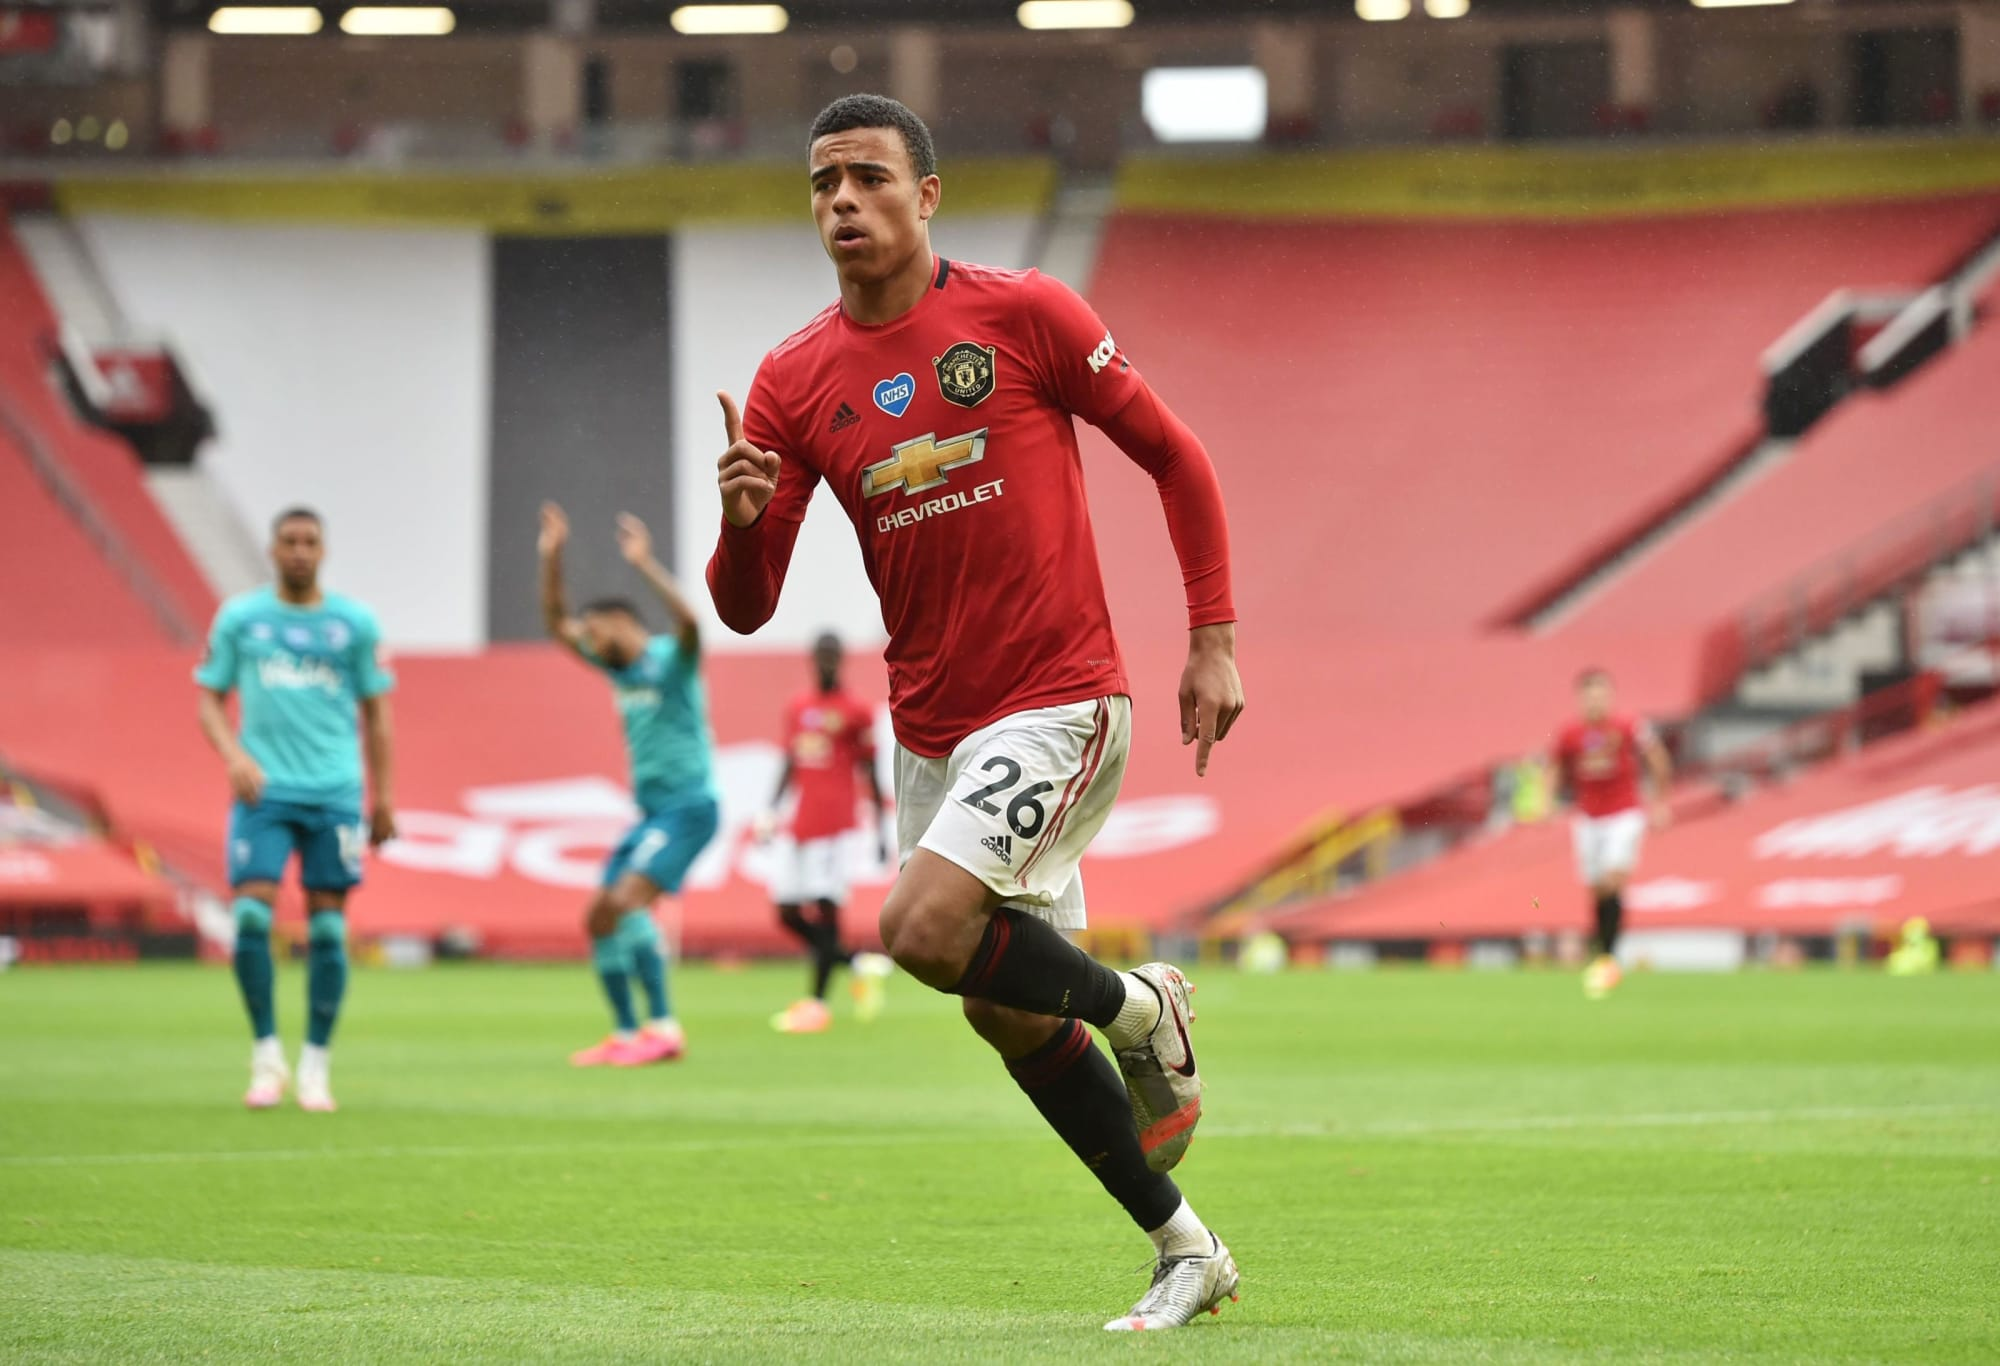 Manchester United: Why buy Sancho when you have Greenwood?